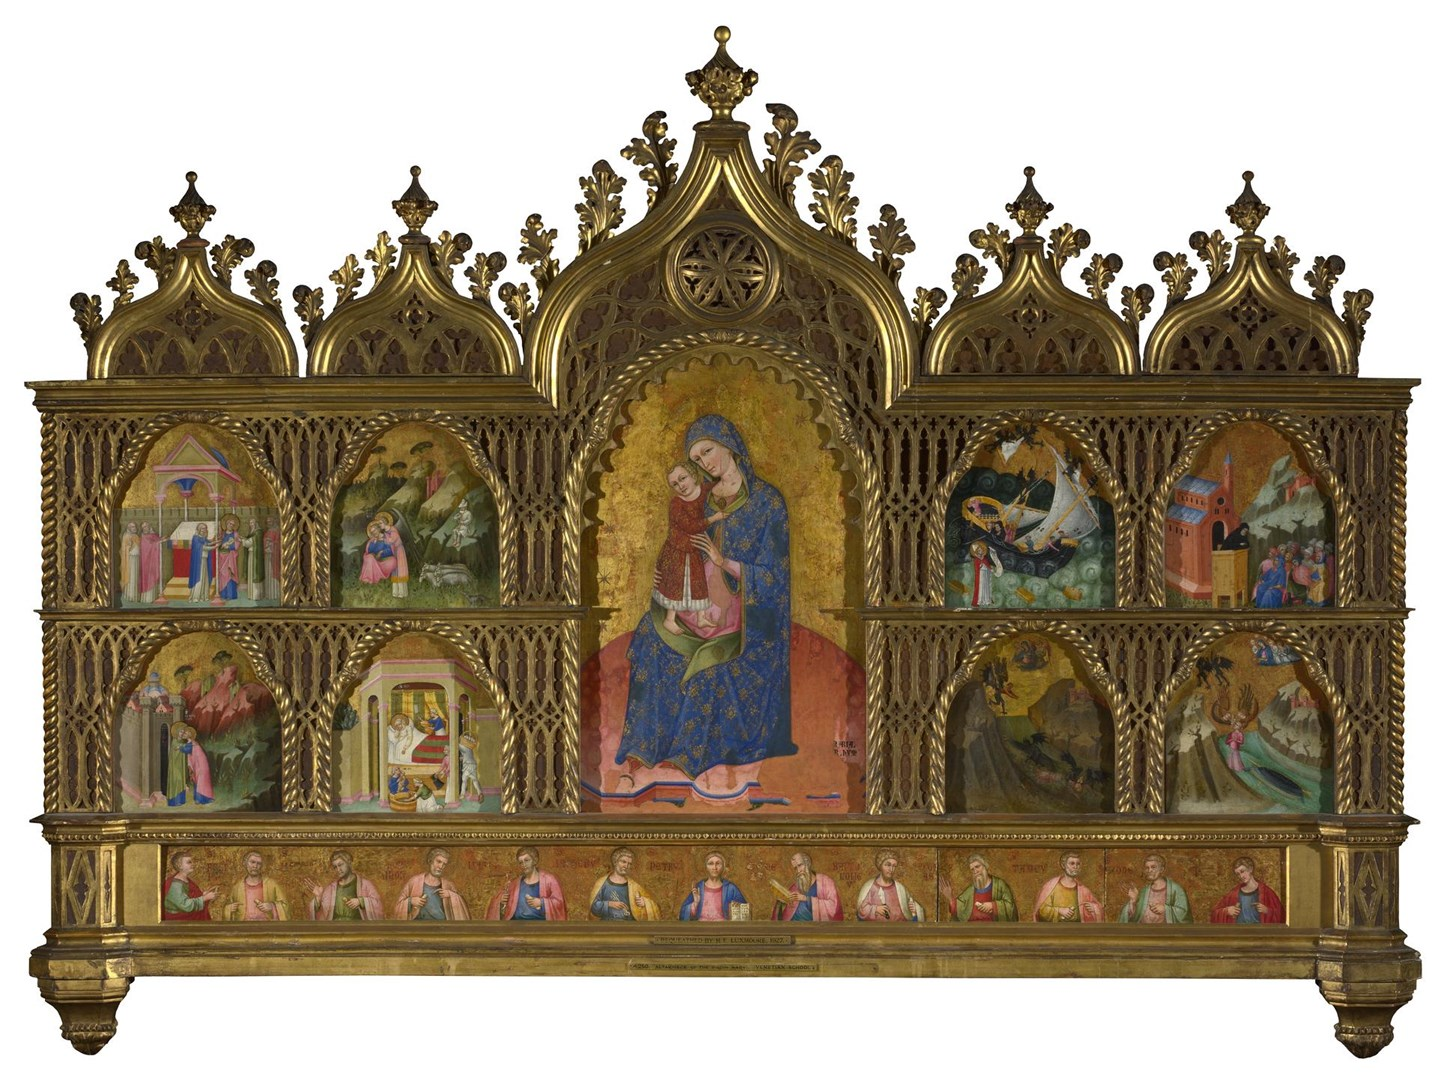 Altarpiece of the Virgin Mary by Dalmatian/Venetian